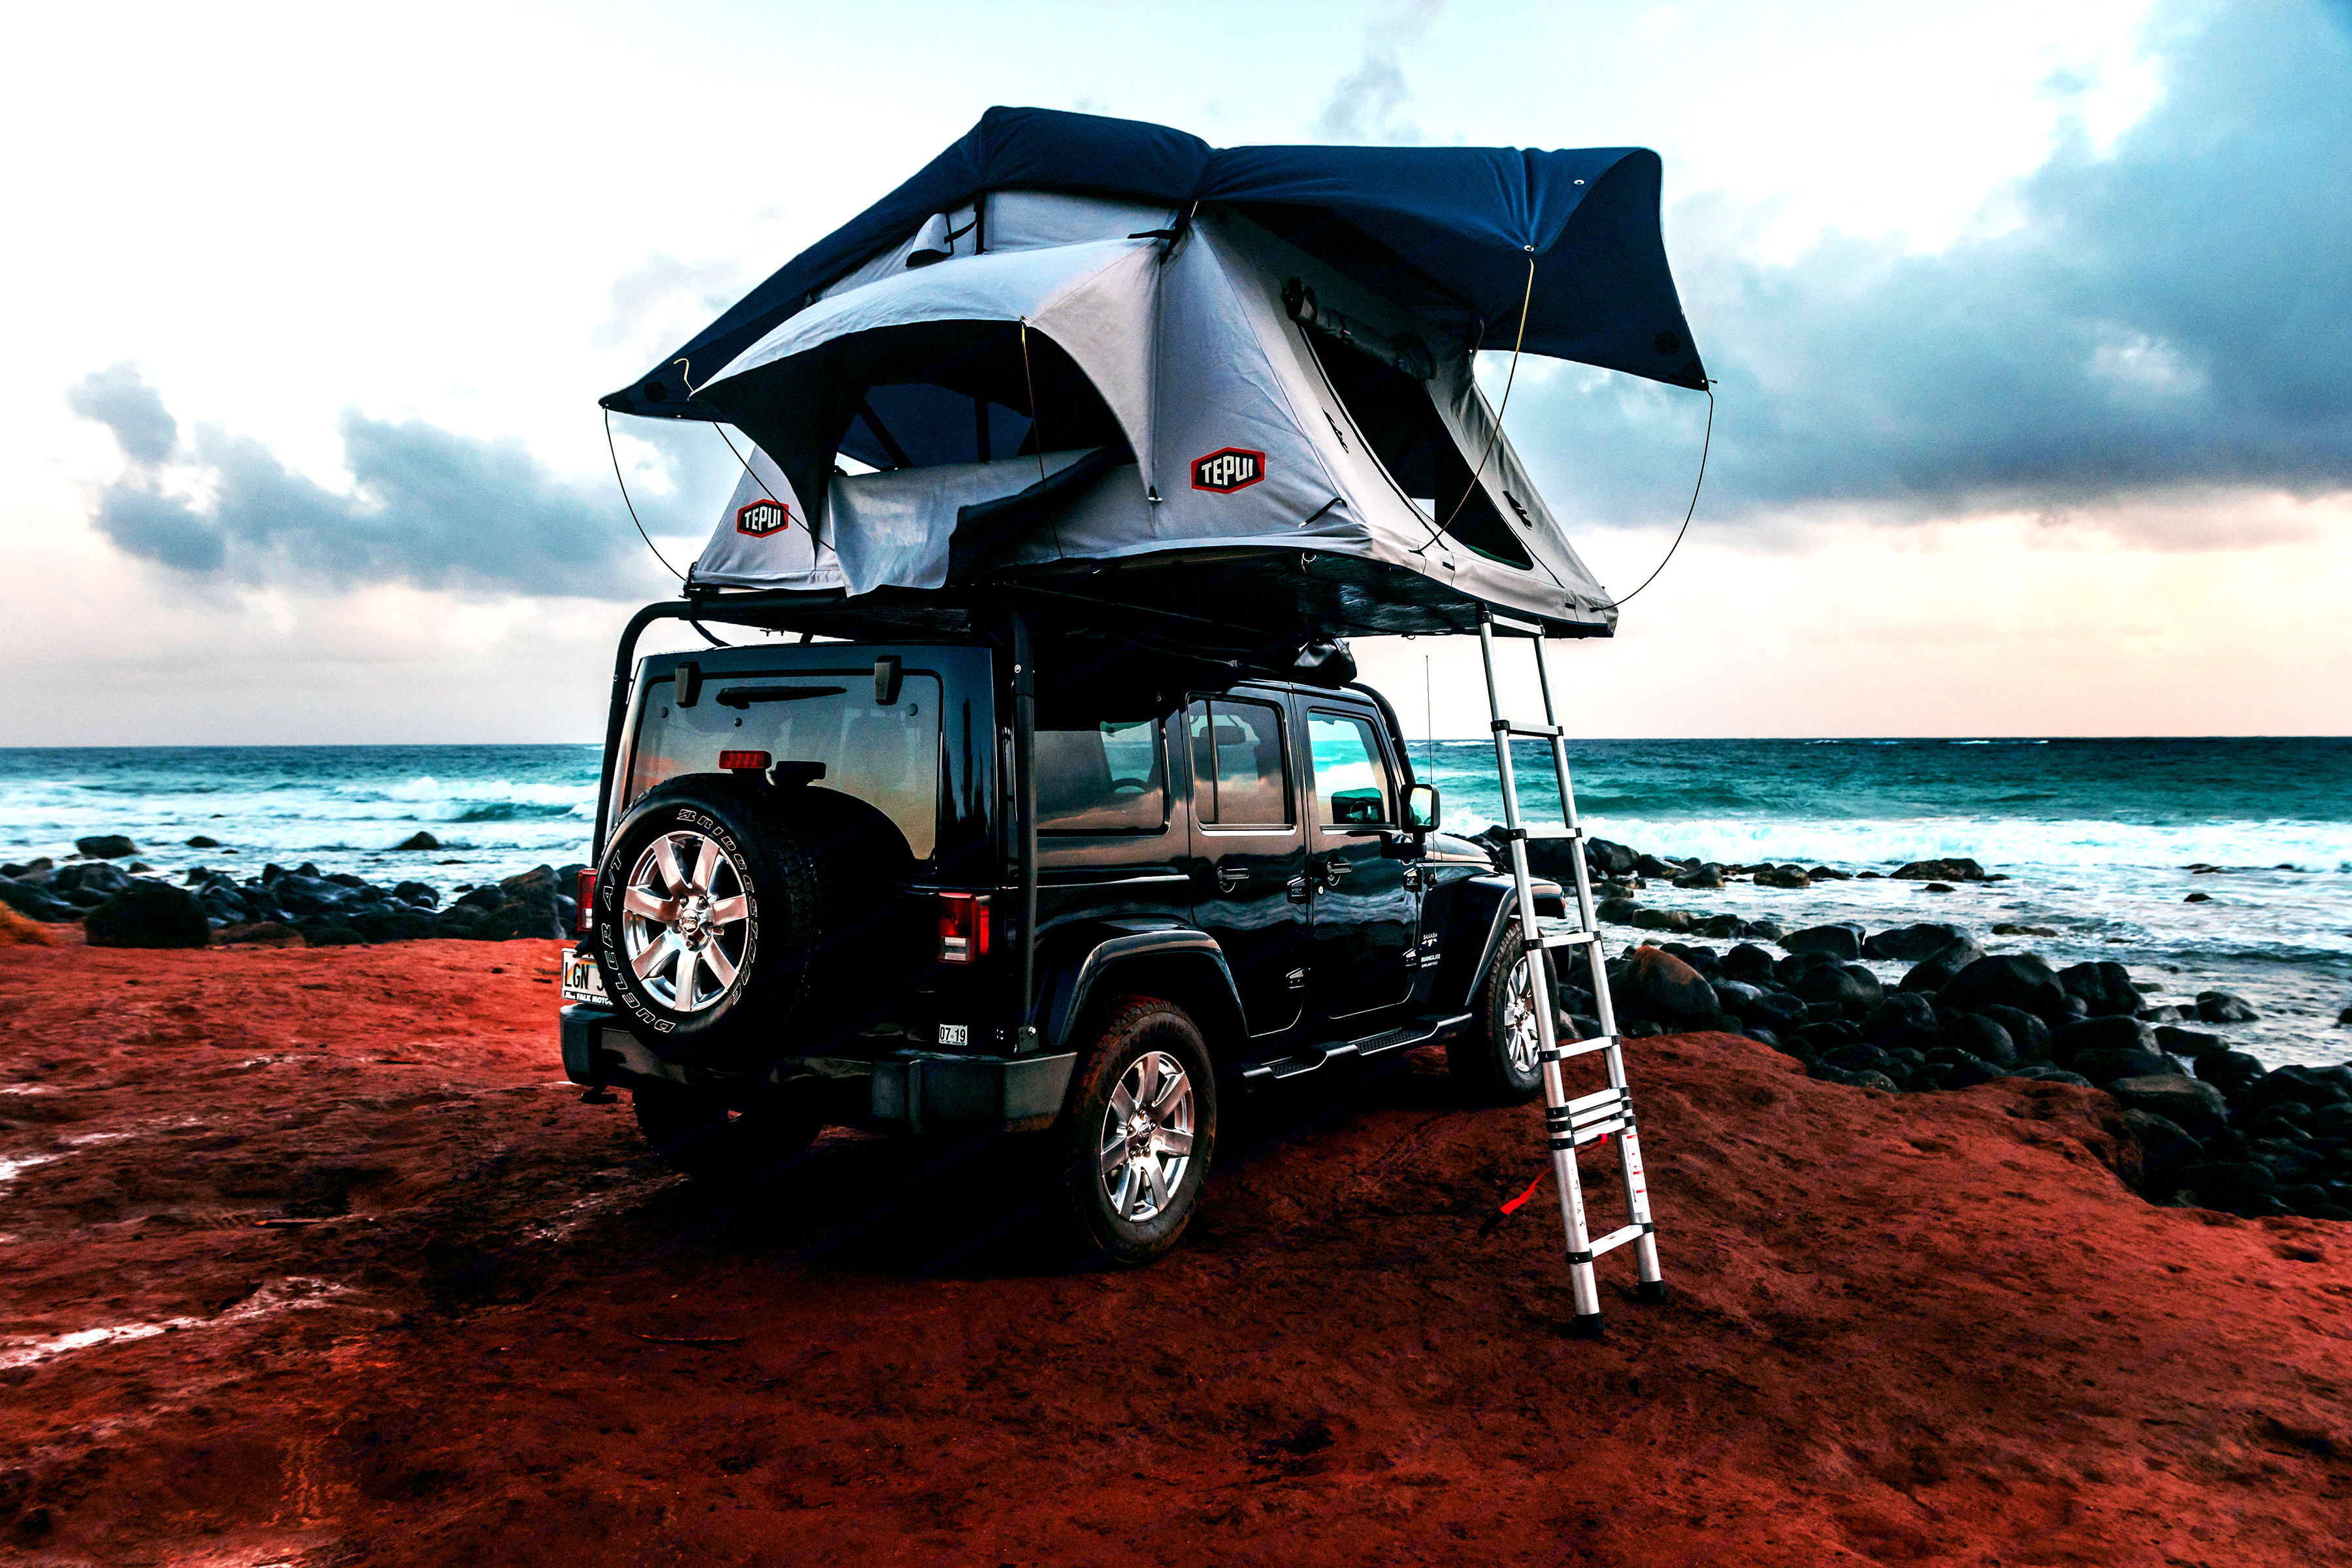 Here the tent is holding up without issue in 25-30mph winds!. Jeep Wrangler Unlimited 2016